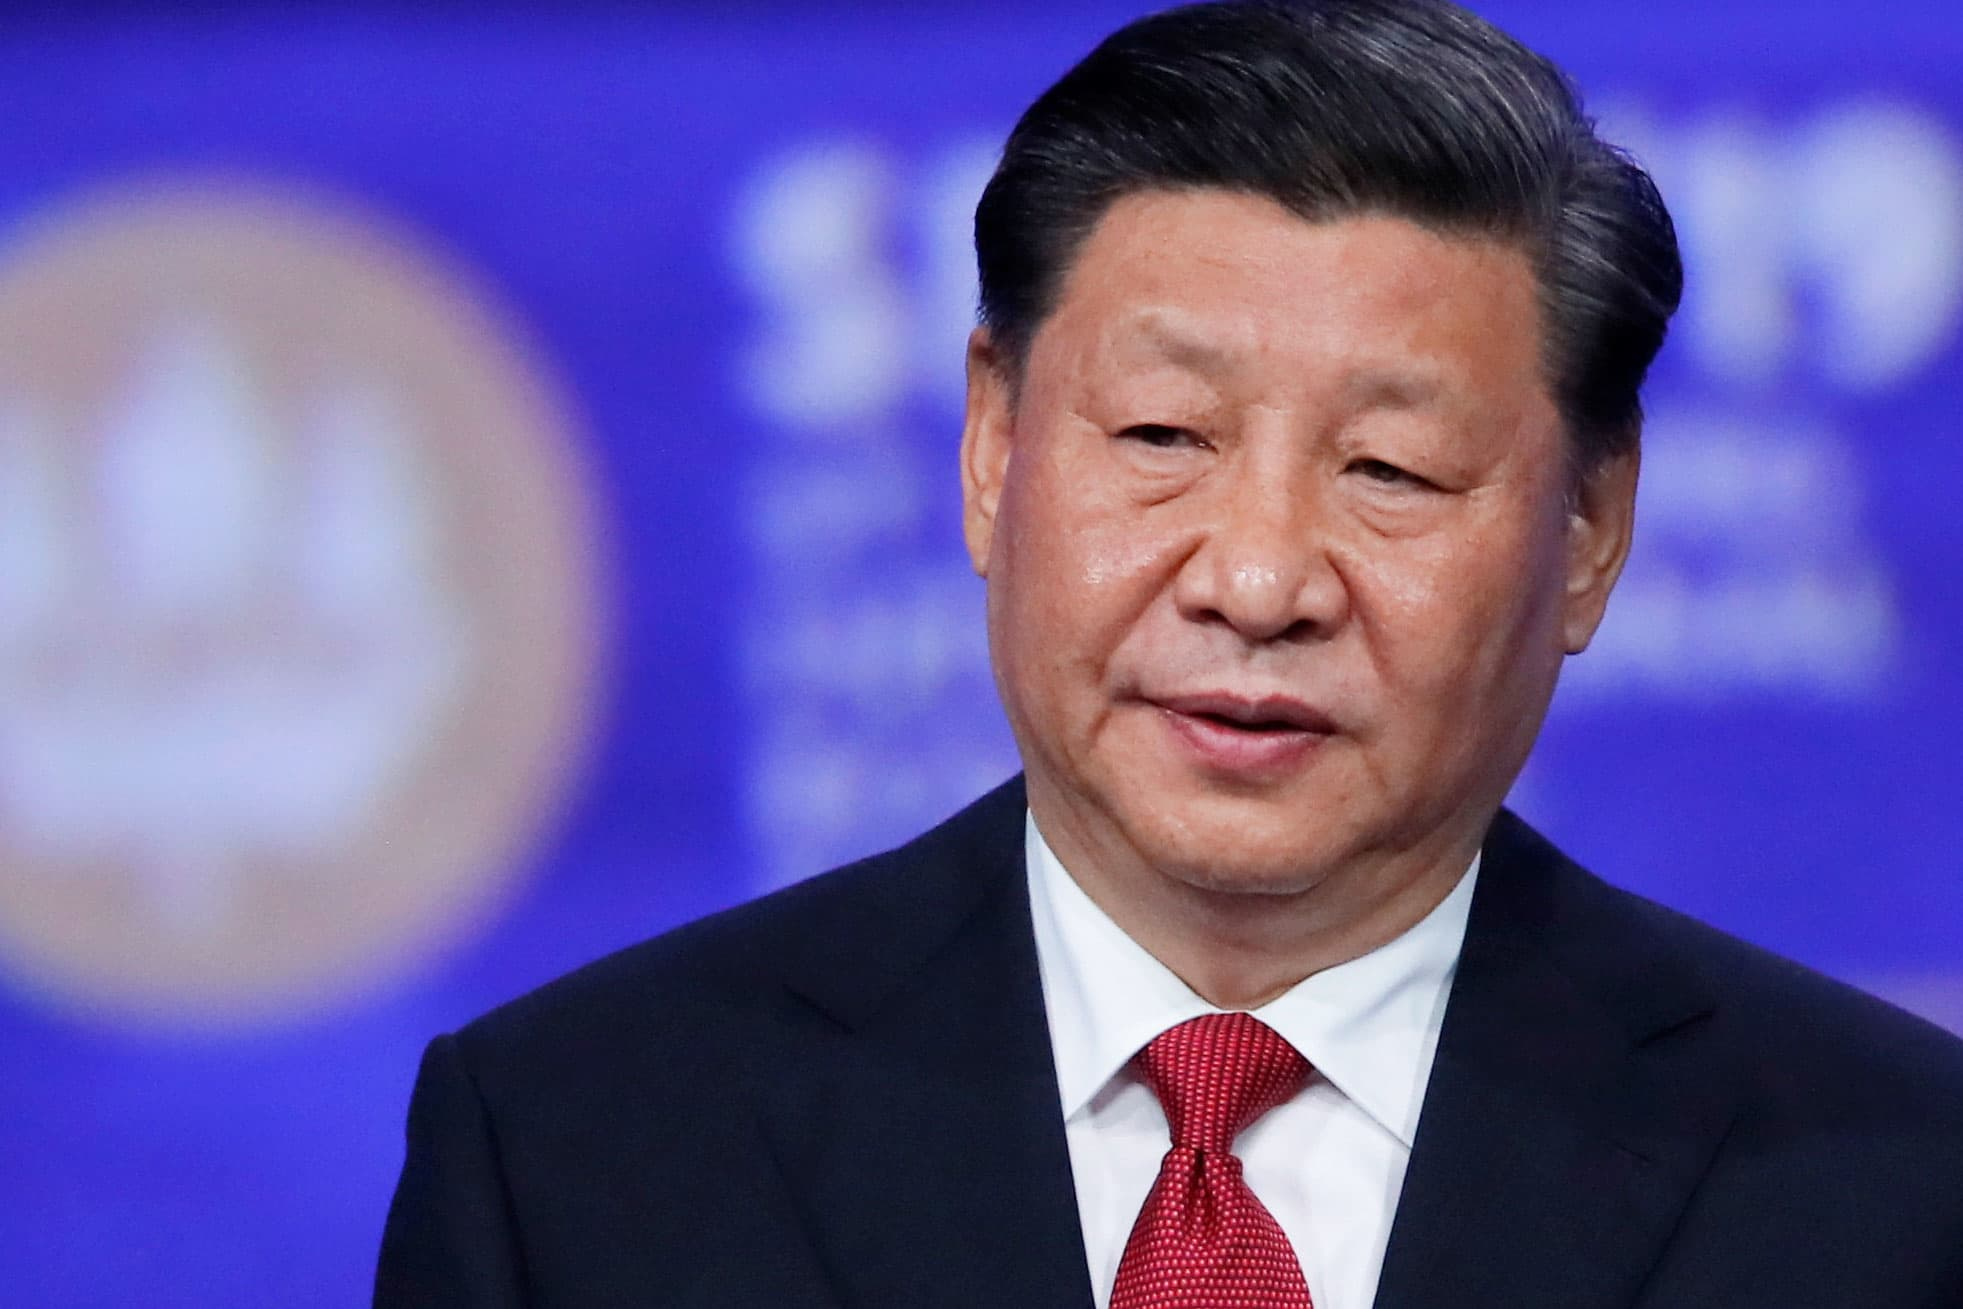 Jim Cramer: China often reneges on deals, but 'this one feels different'